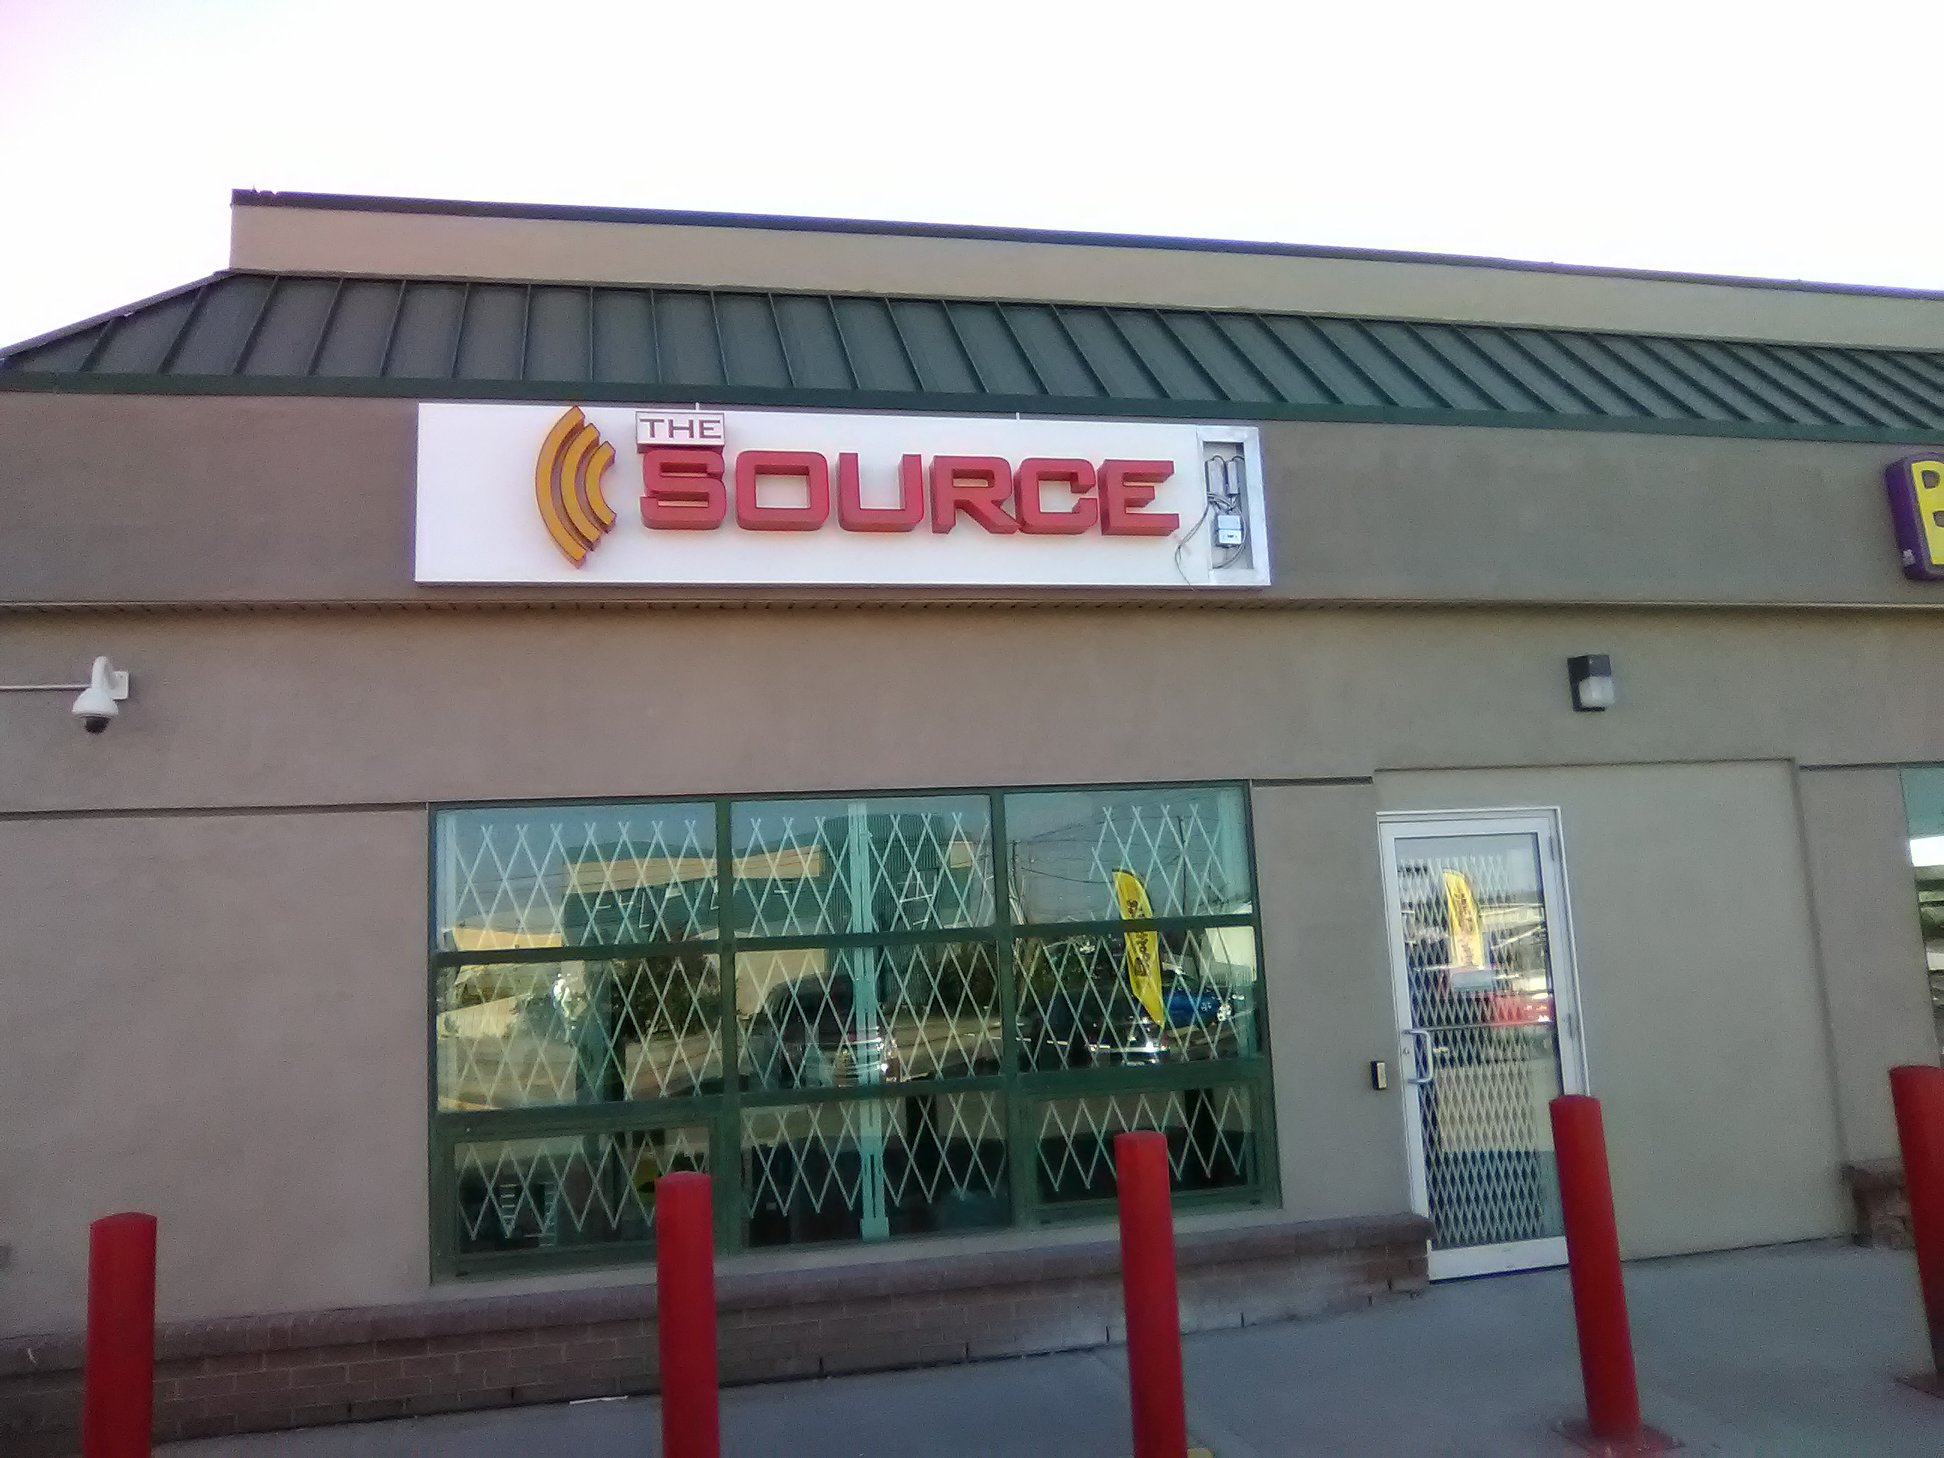 New Backlit Sign for The Source Retail Store